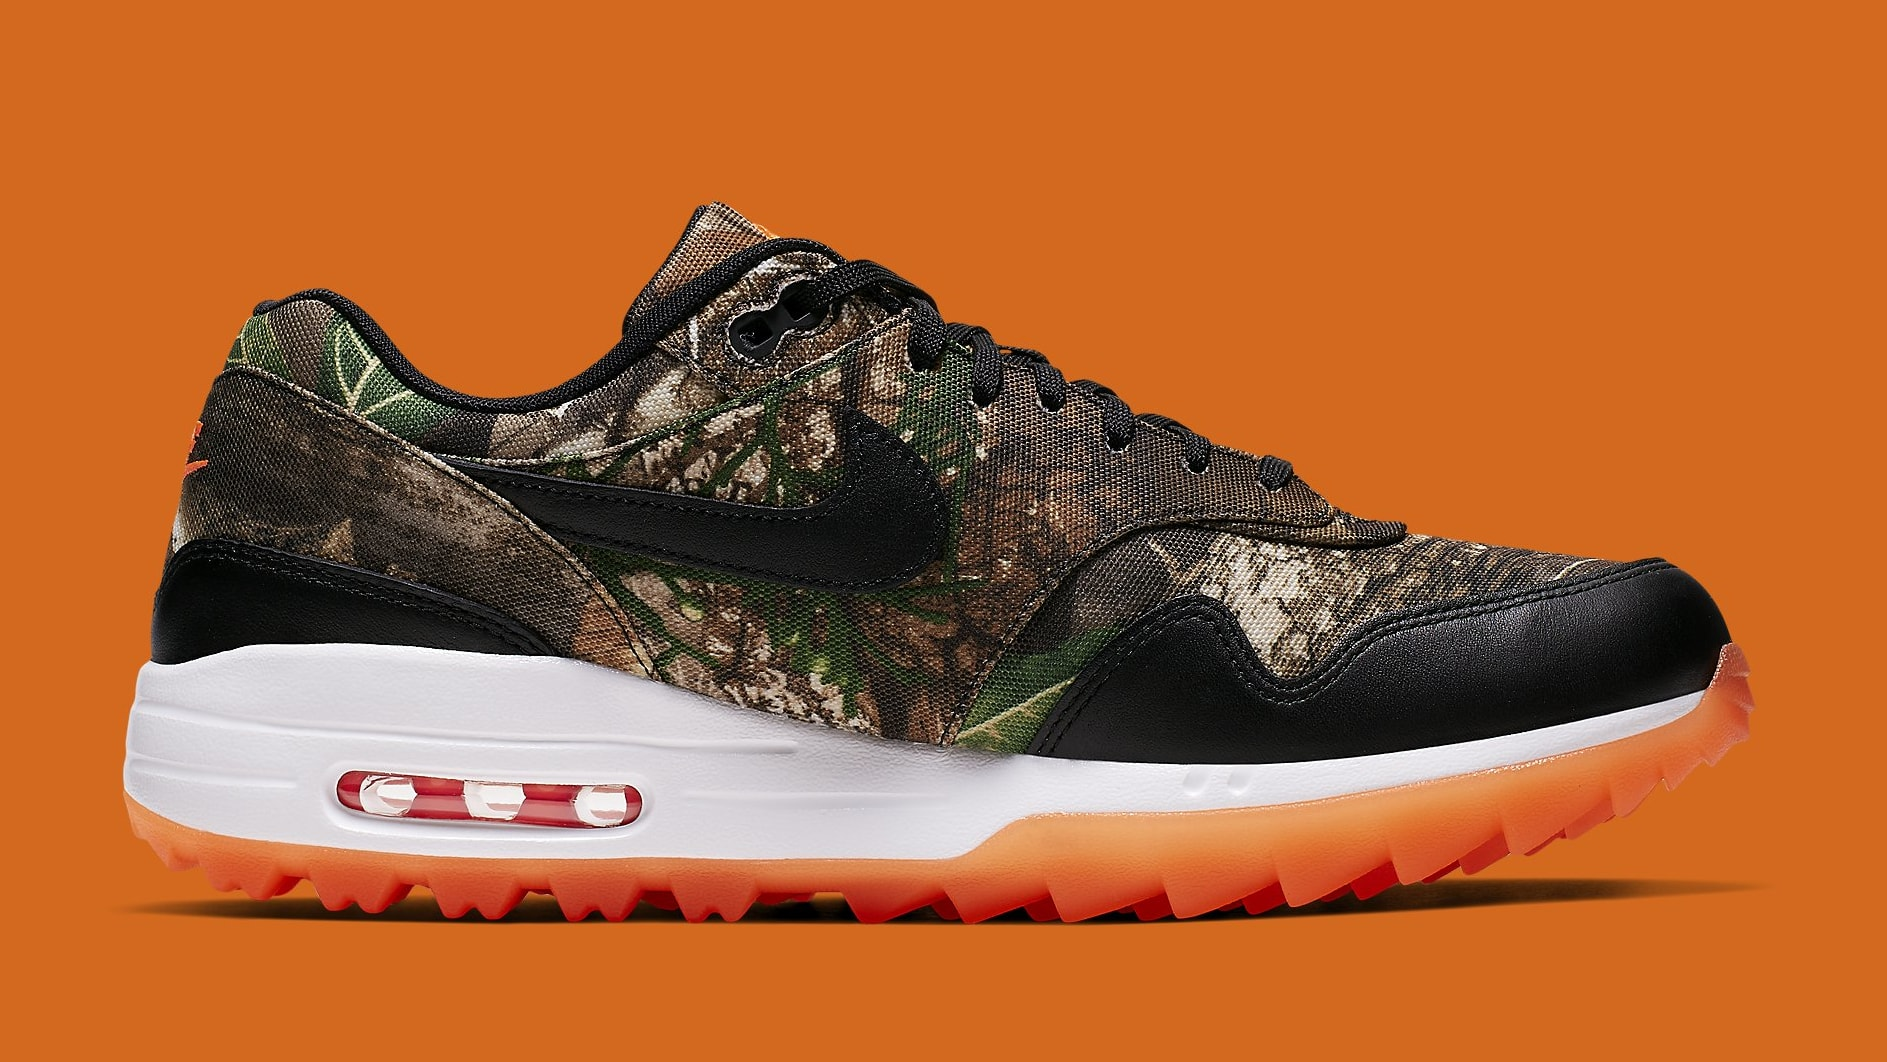 Nike Air Max 1 Golf Release Date BQ8404 210 Sole Collector  Sole Collector